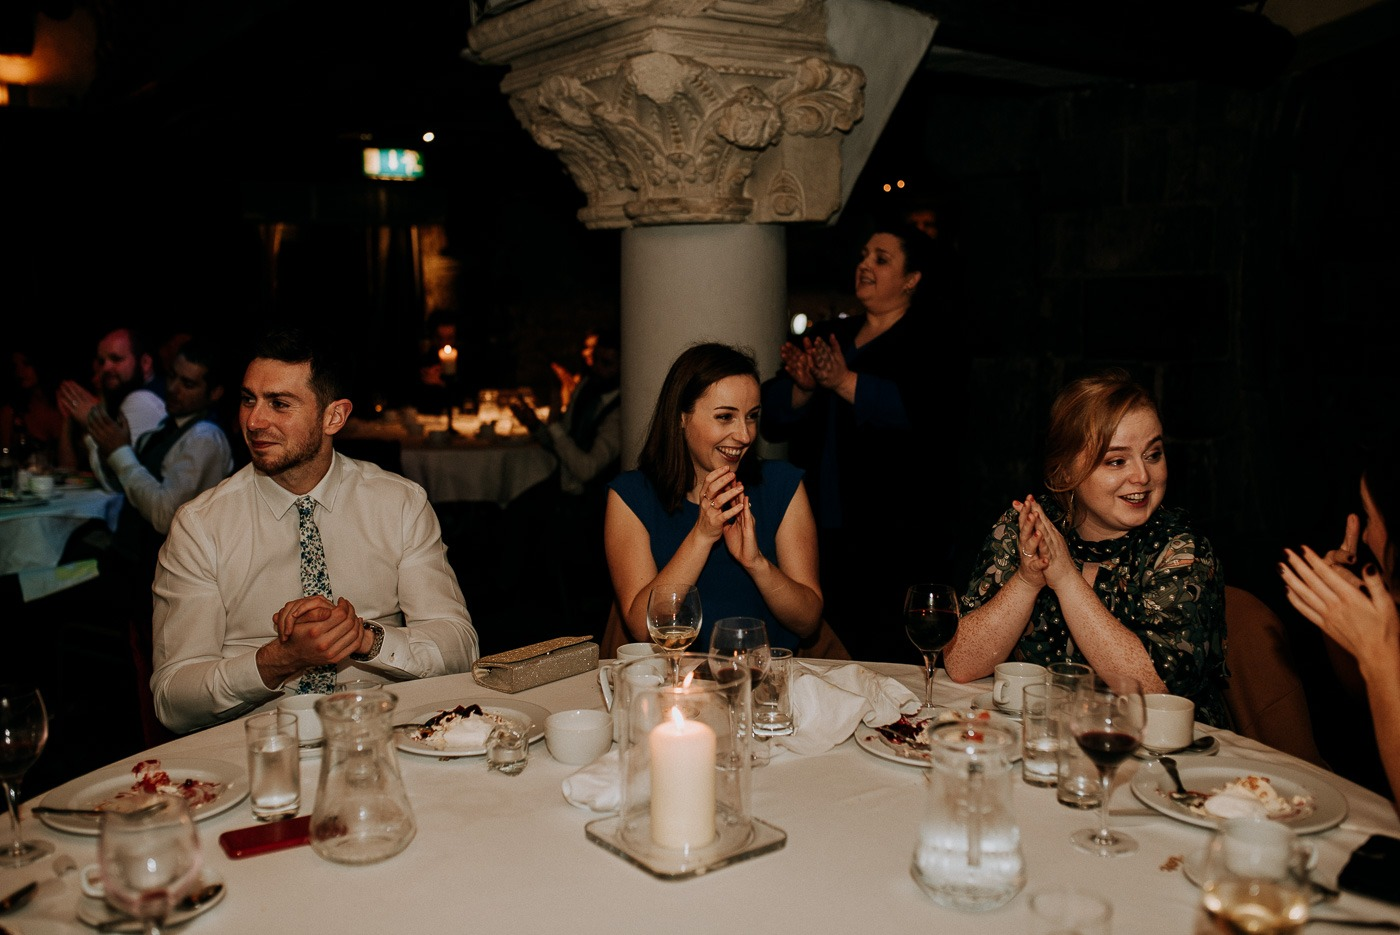 A group of people sitting at a table with wine glasses